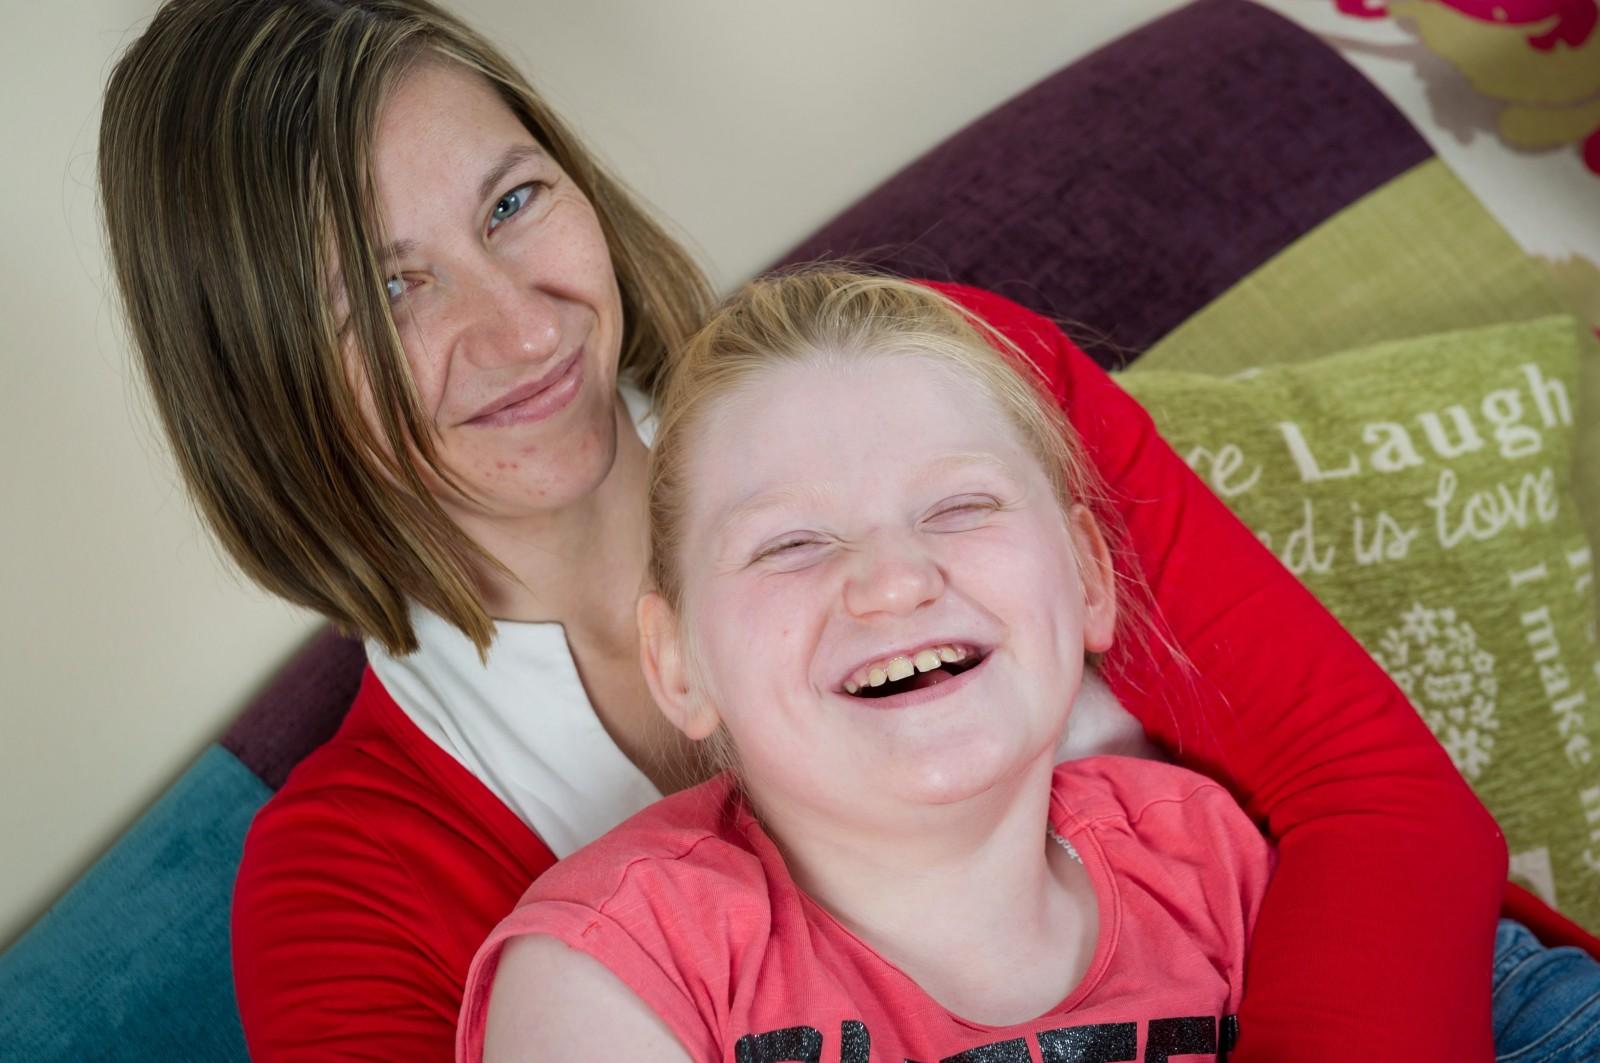 Rare genetic condition means this brave little girl never stops smiling